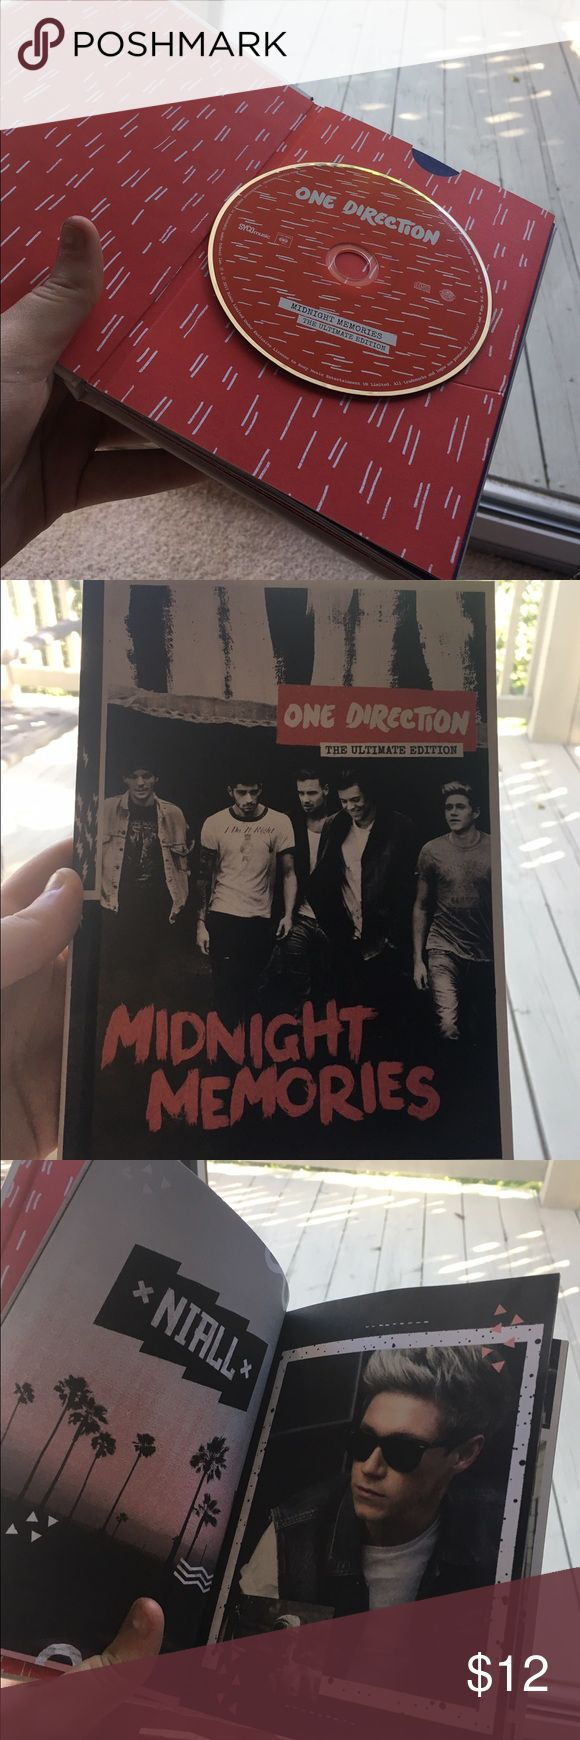 Midnight Memories limited edition CD Scrapbook Limited edition book filled with lots of picture and stories about One Direction and the full Midnight Memories album.!! Other